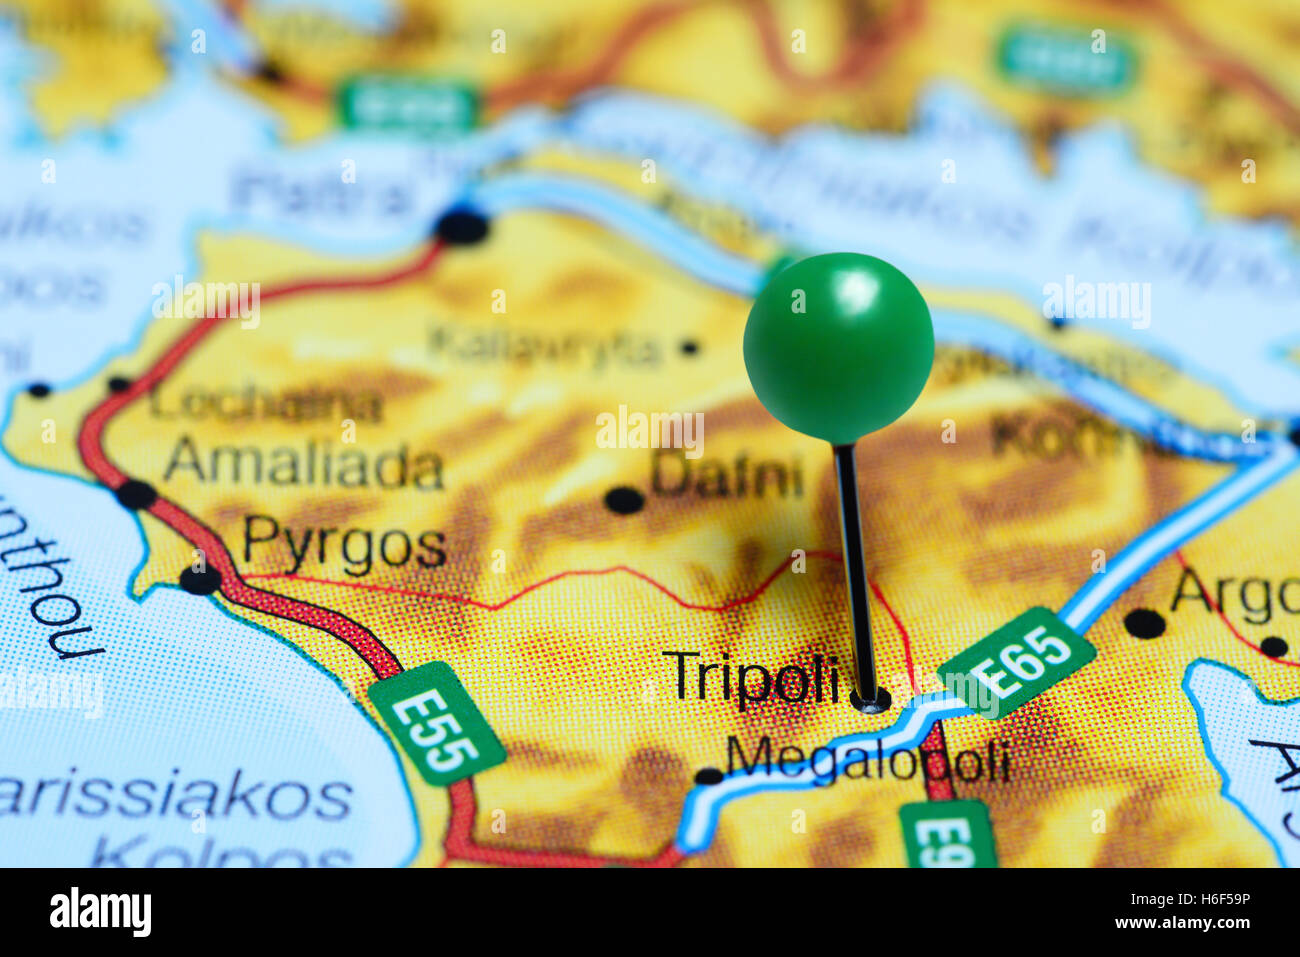 Tripoli Pinned On A Map Of Greece Stock Photo 124493986 Alamy